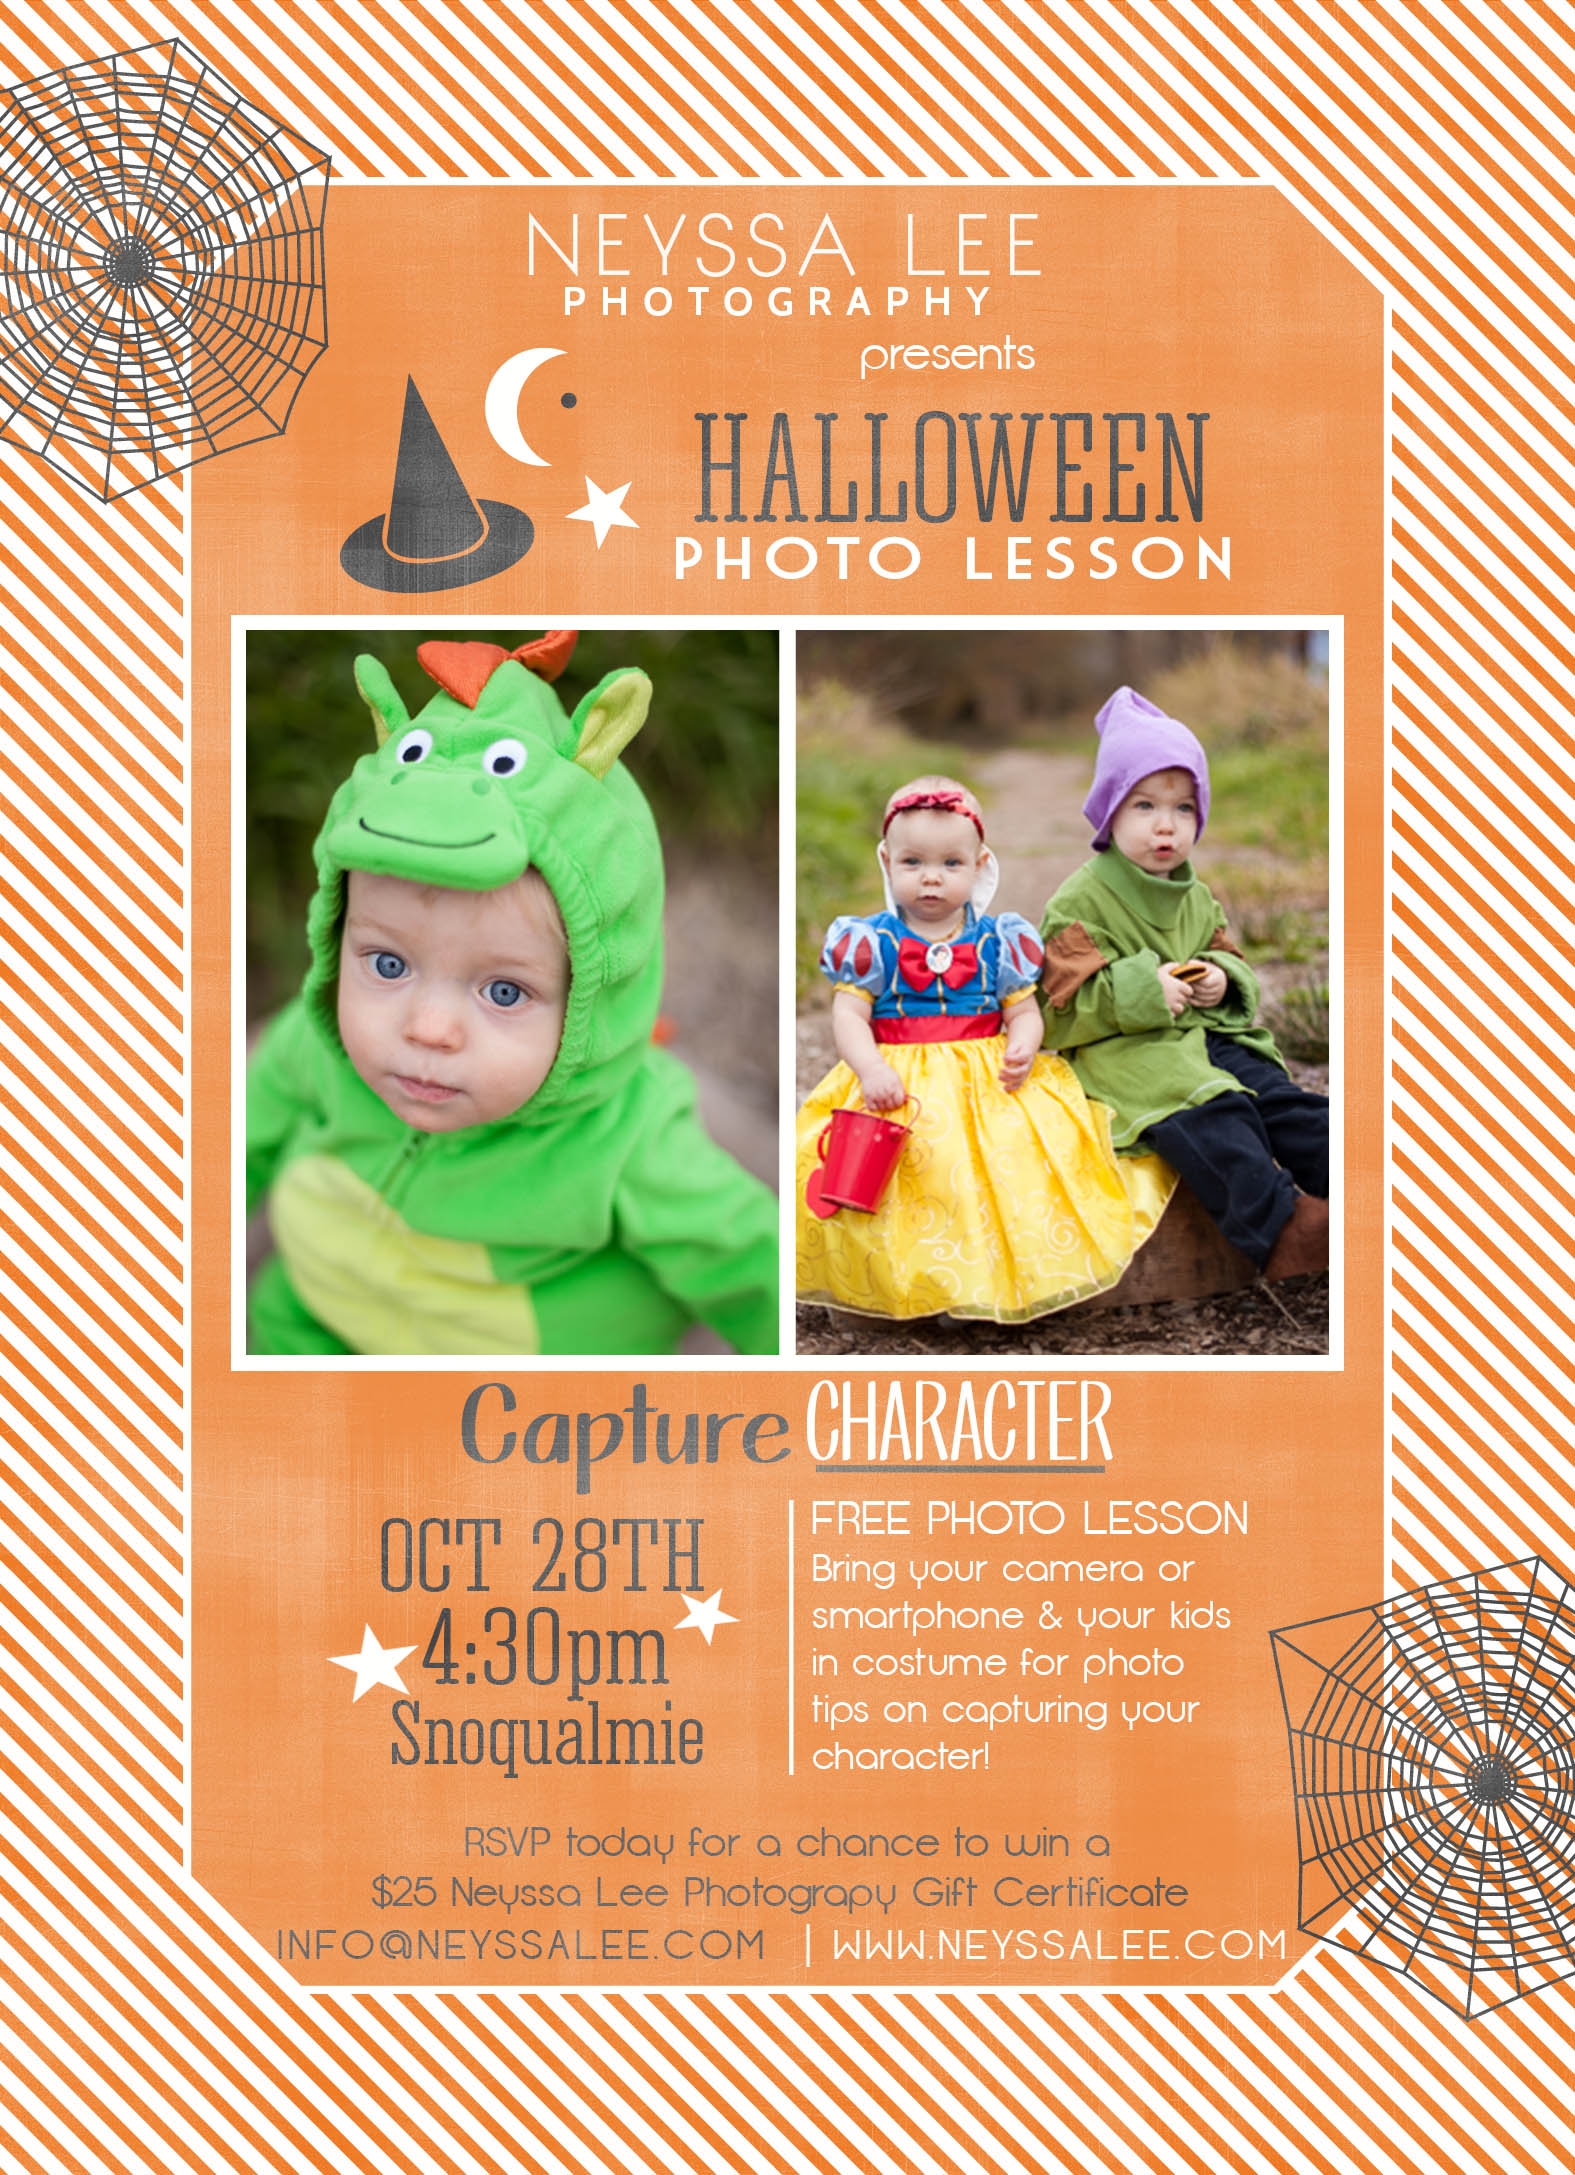 Halloween Photo Event, Costume Photo Tips